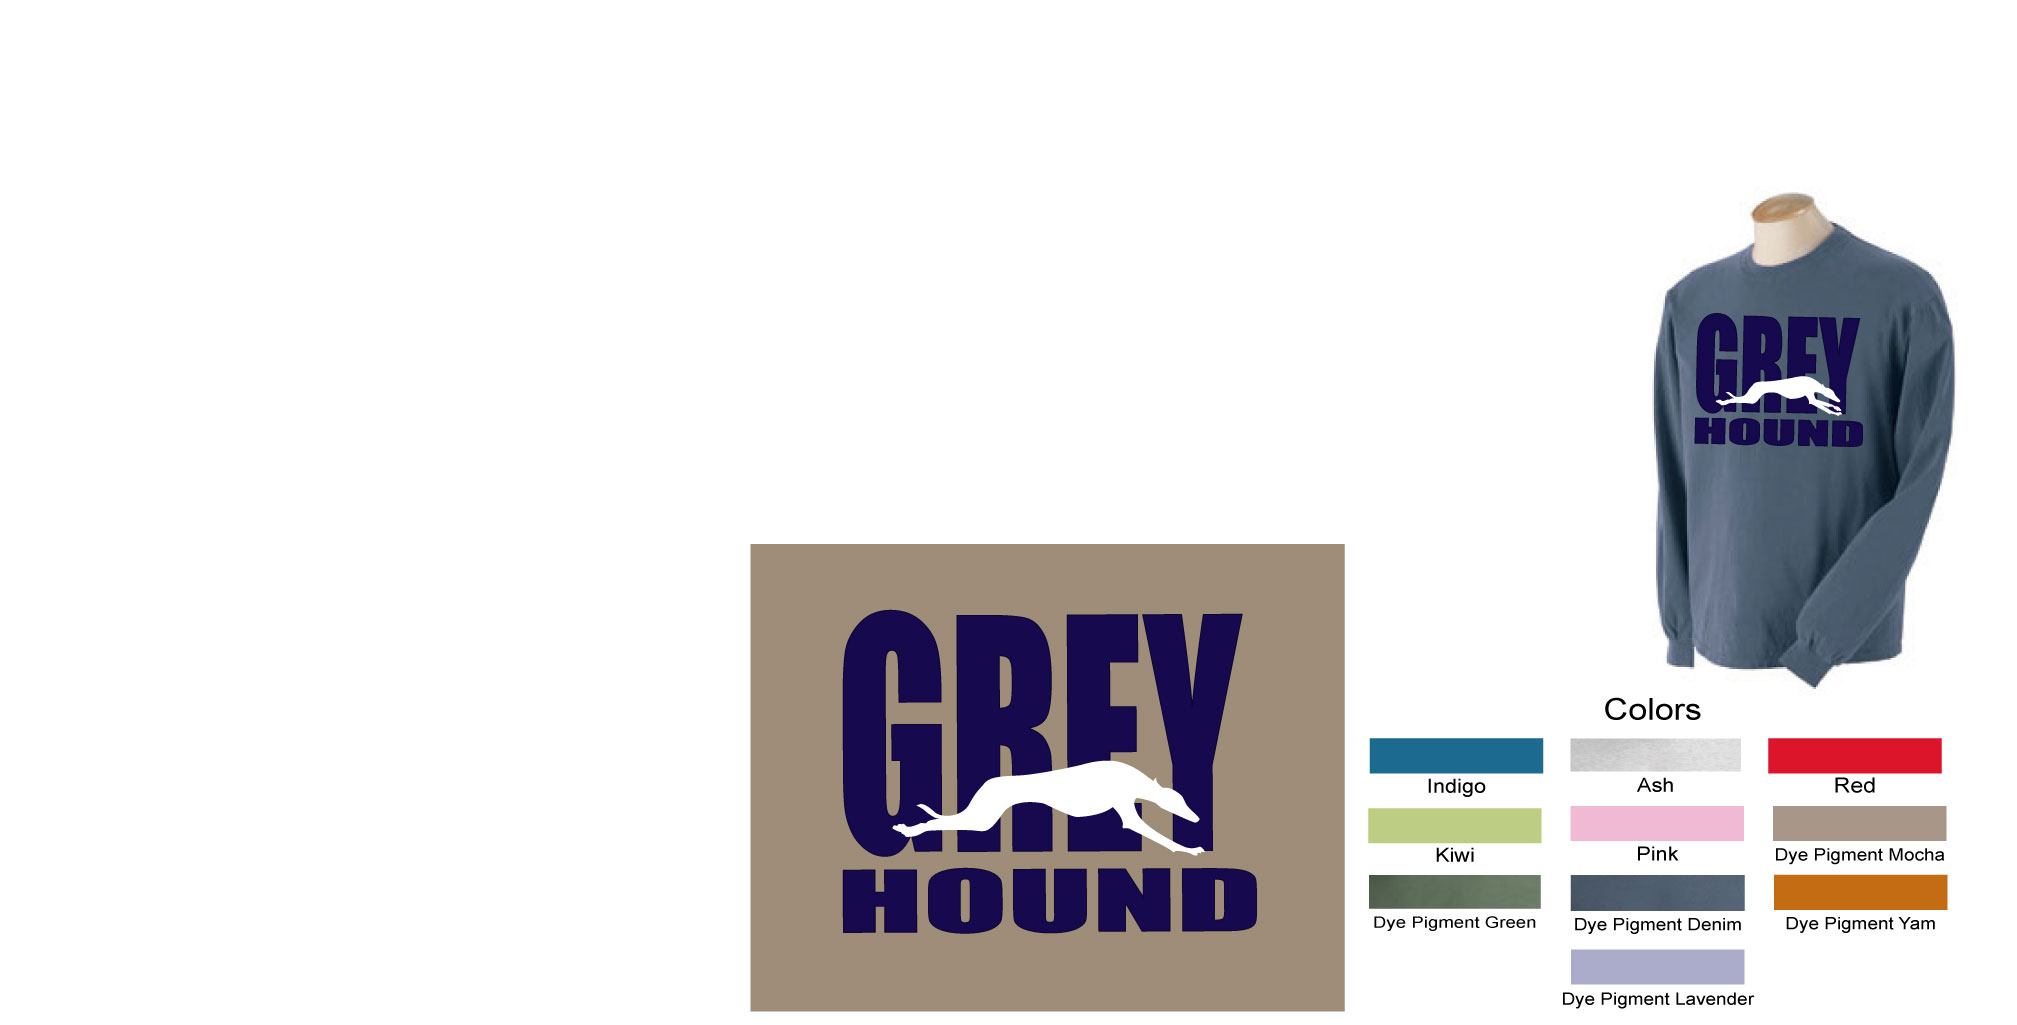 P-37 - GREY hound Long Sleeve T-Shirt